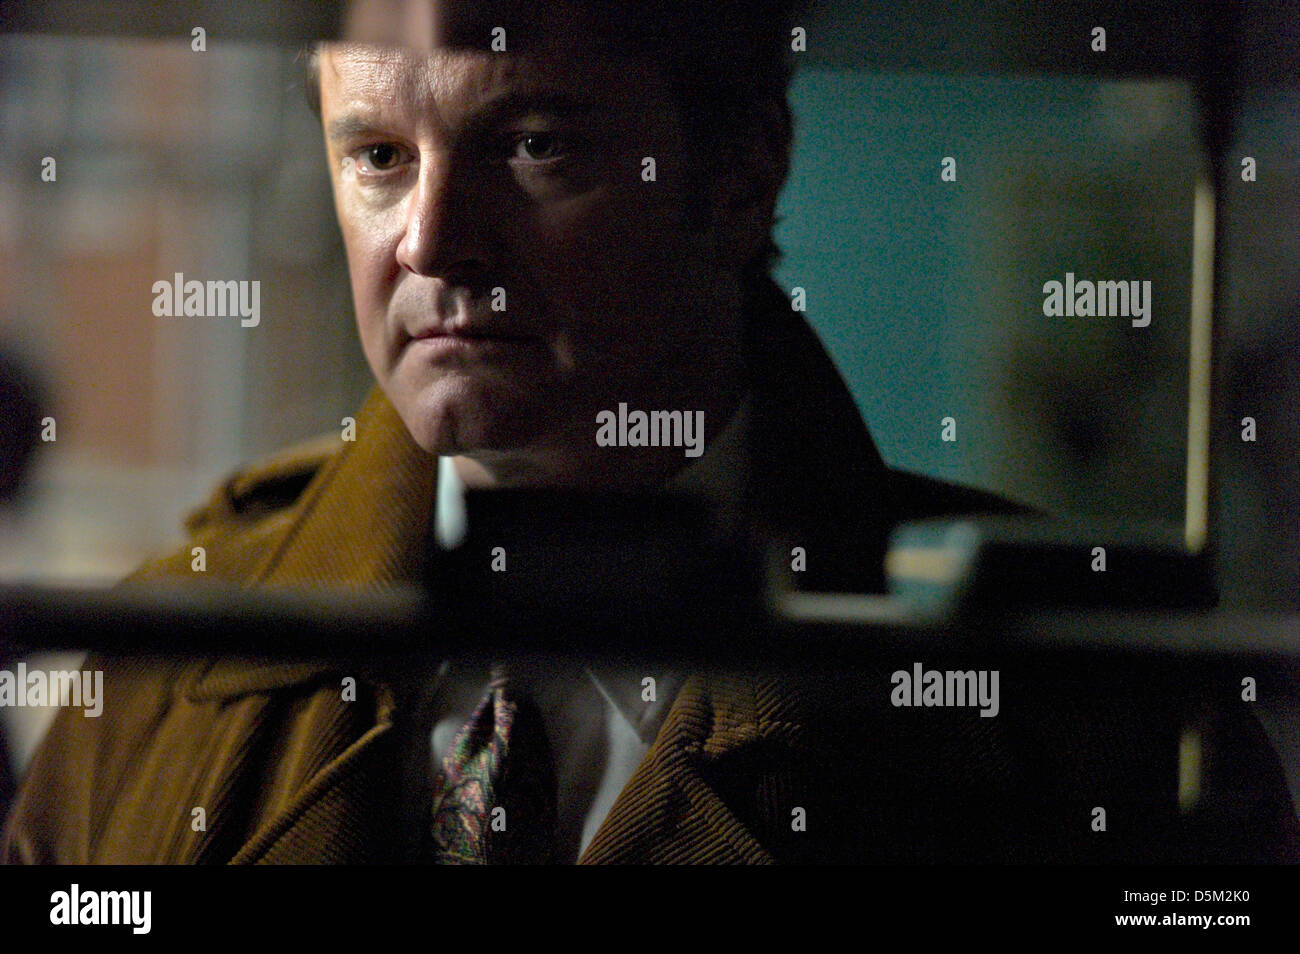 COLIN FIRTH TINKER TAILOR SOLDIER SPY (2011) Immagini Stock